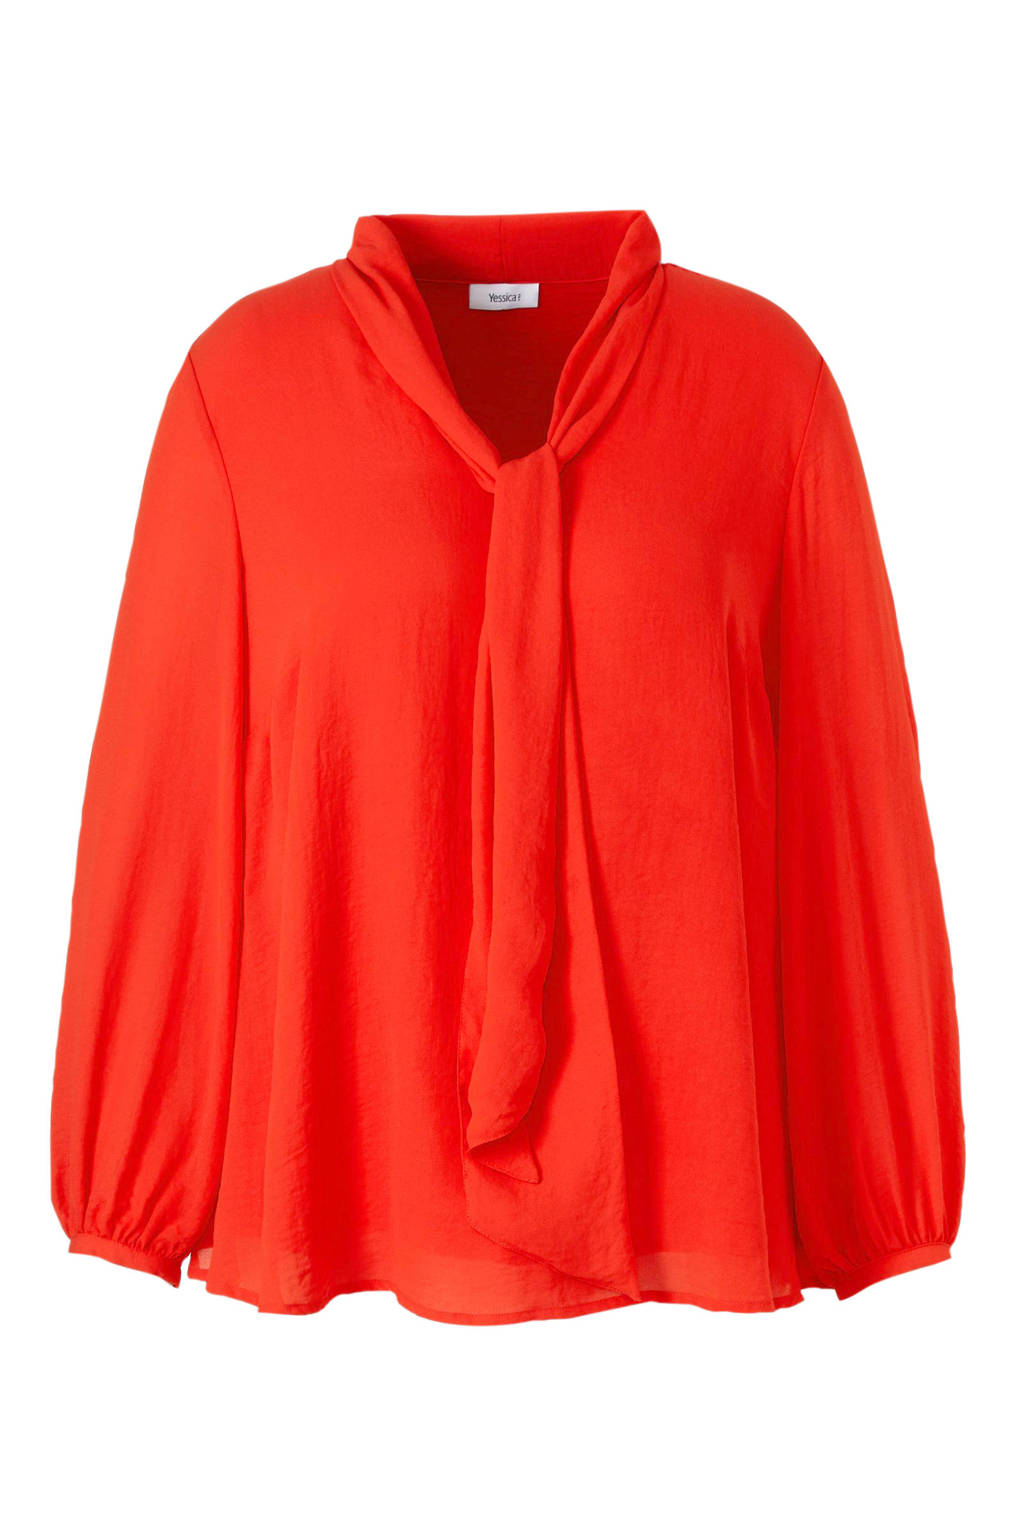 C&A XL Yessica top rood, Rood